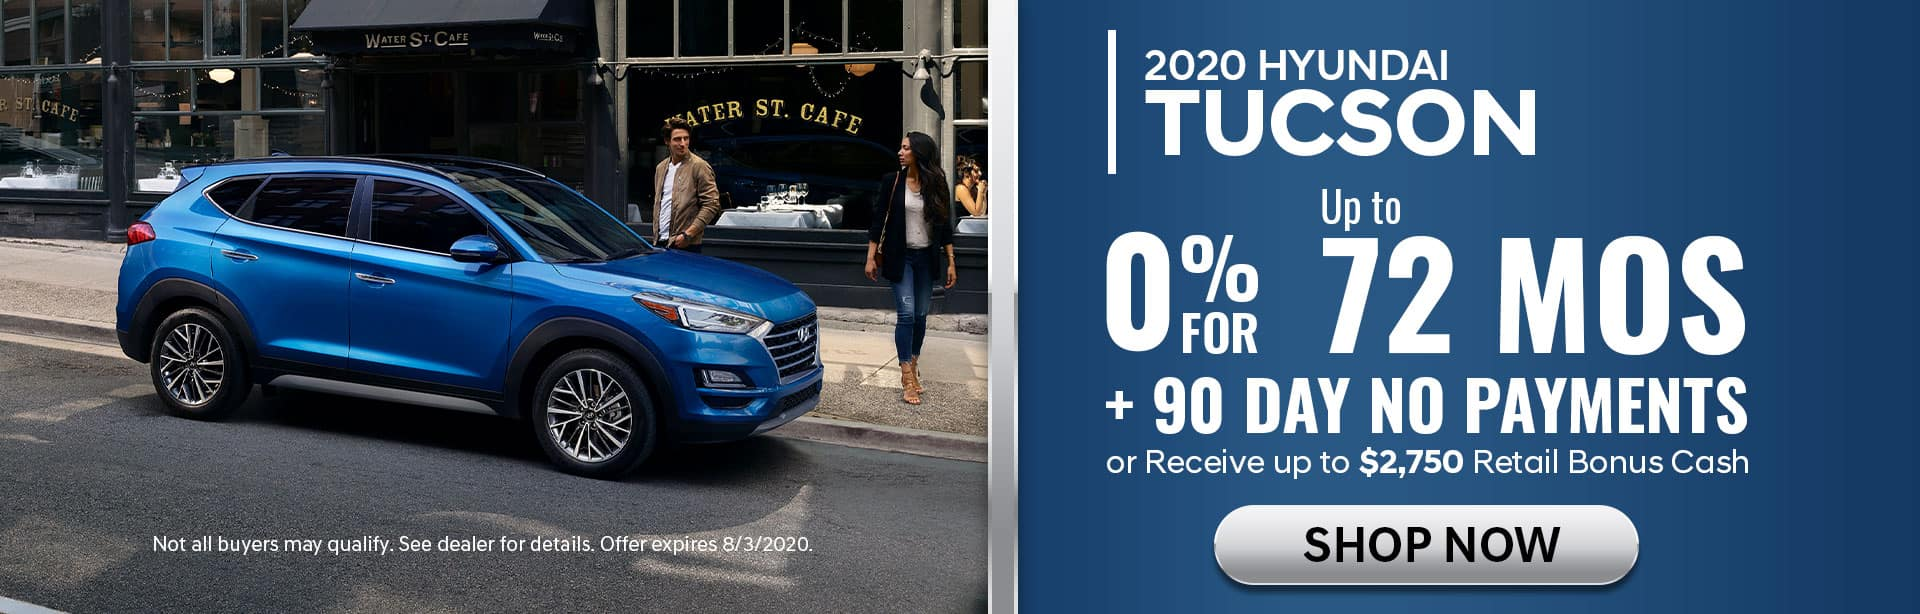 0% for 72 mos on 2020 Tuscon